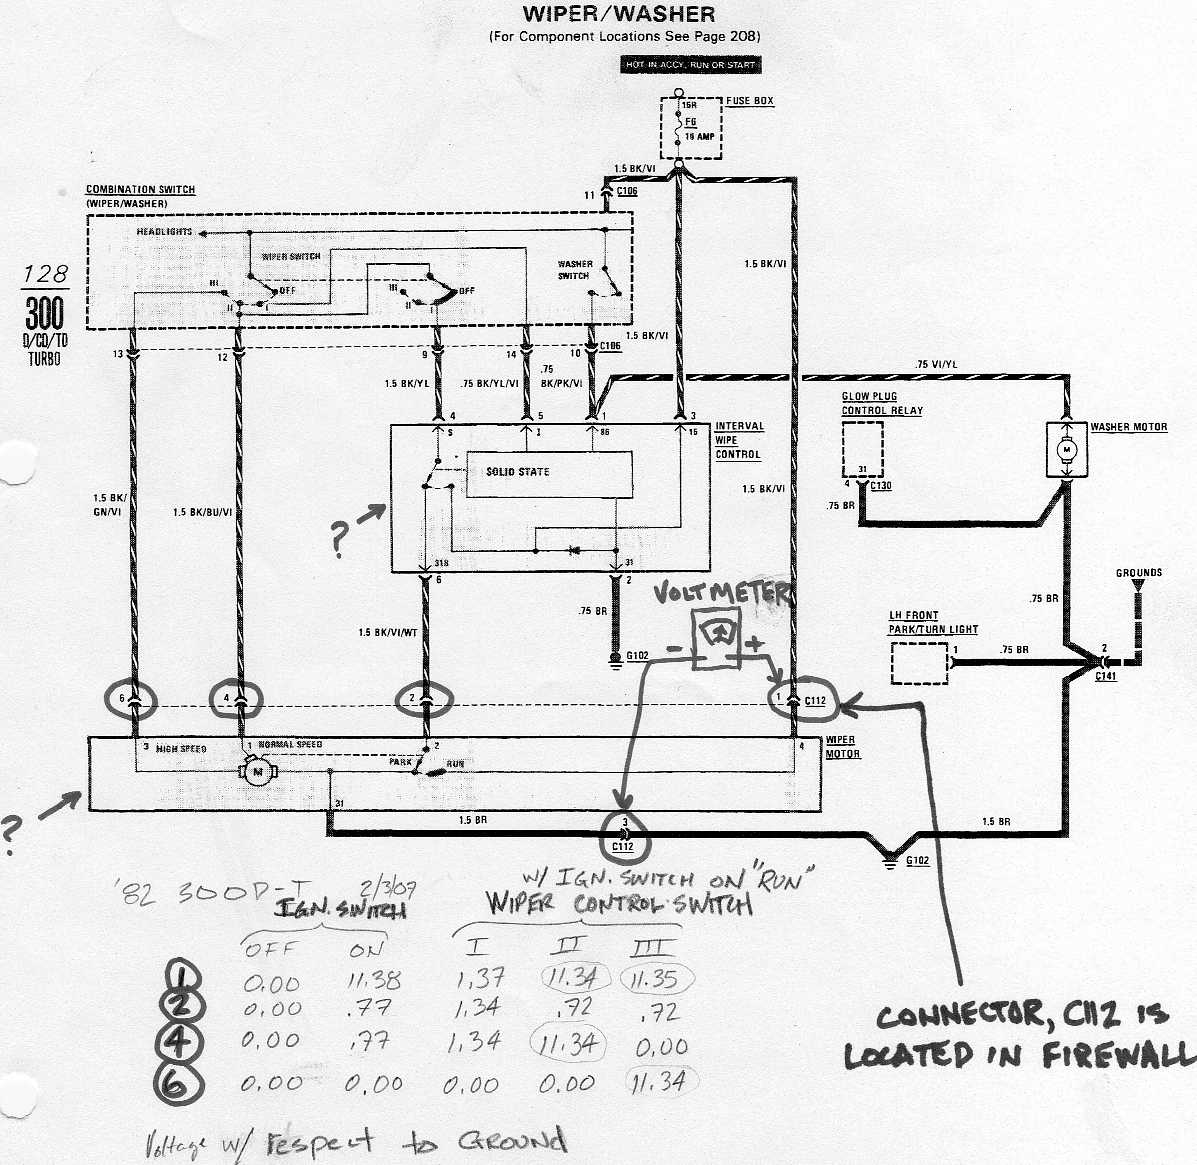 1984 F150 Windshield Wiper Wiring Diagram Library 1980 Chevy Motor Click Image For Larger Version Name Diagram002 Views 8930 Size